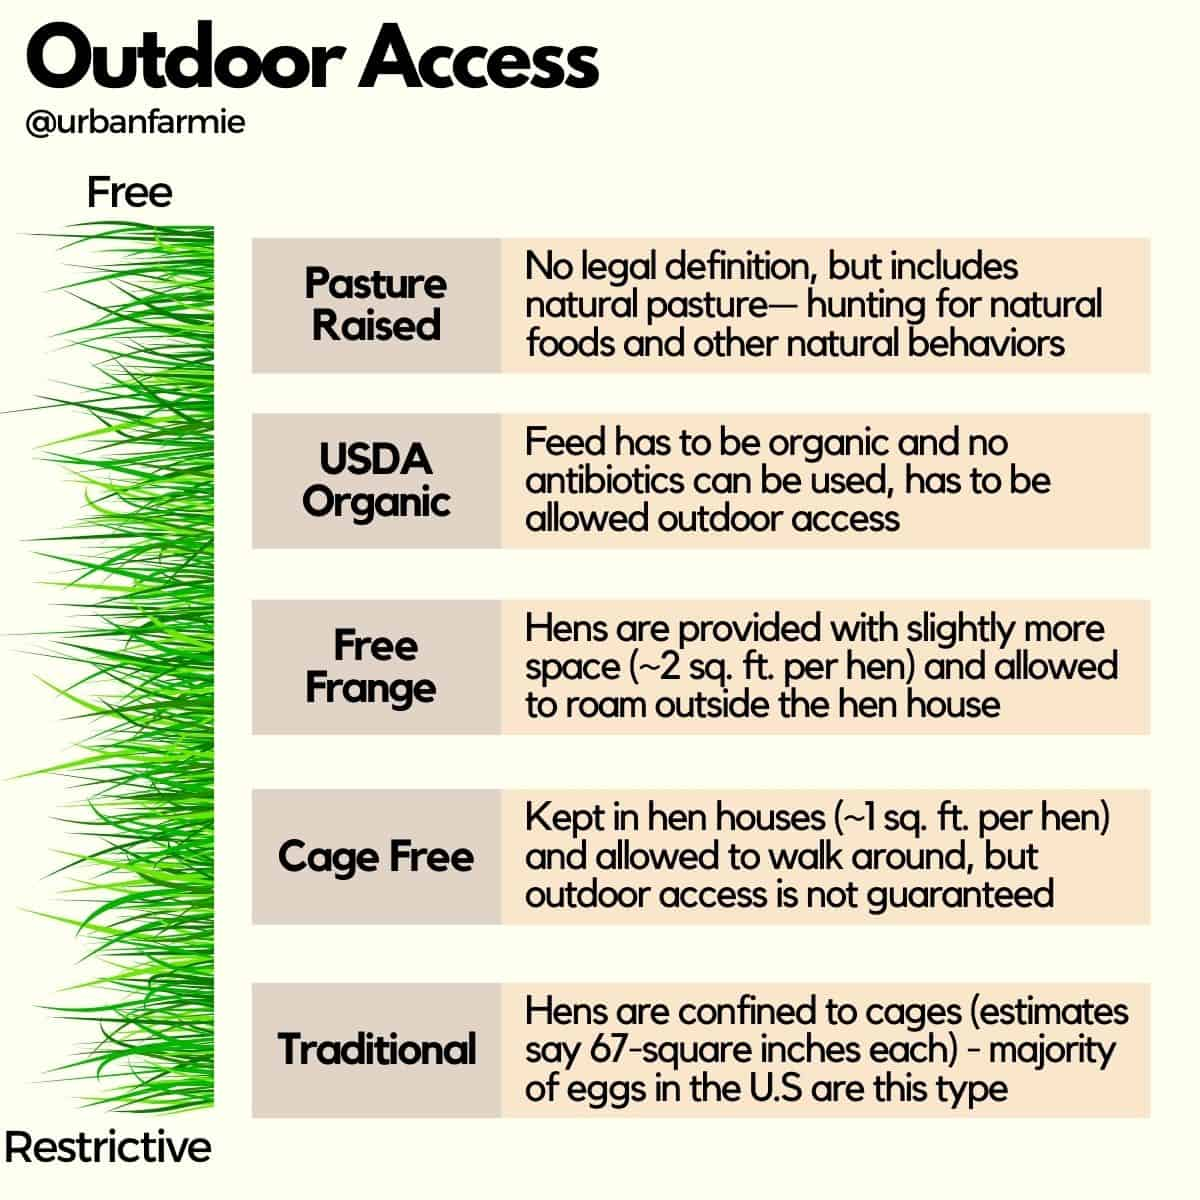 Infographic showing different outdoor access for hens